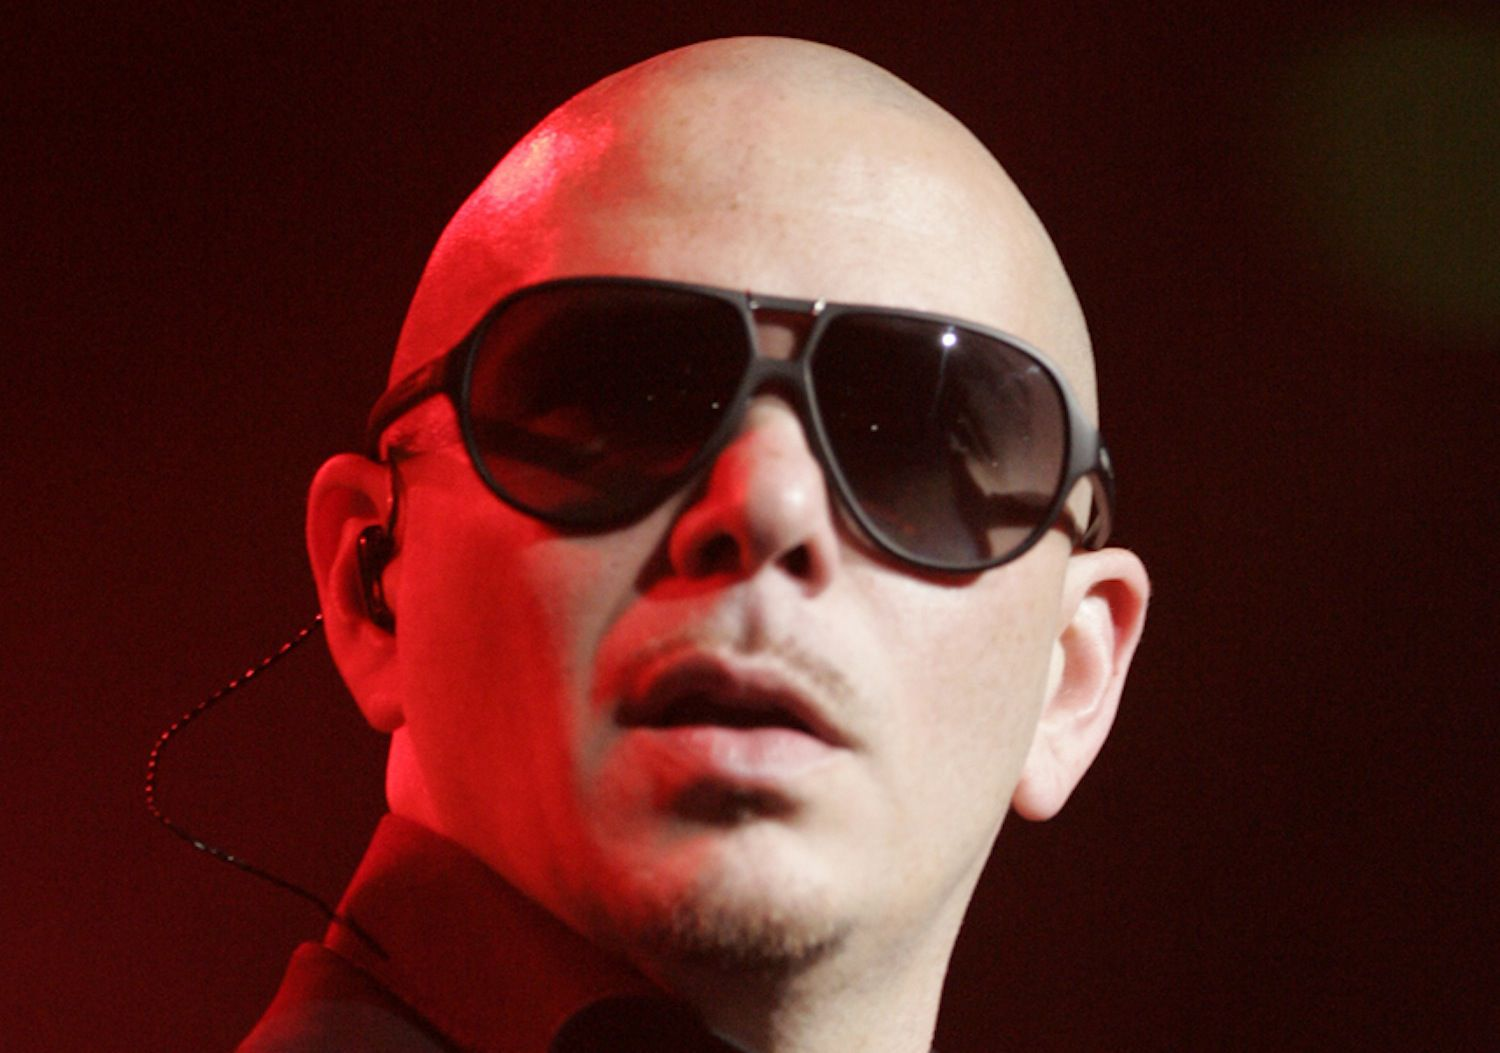 Pitbull at the Planet Pit World Tour in Sydney, Australia In 2012.